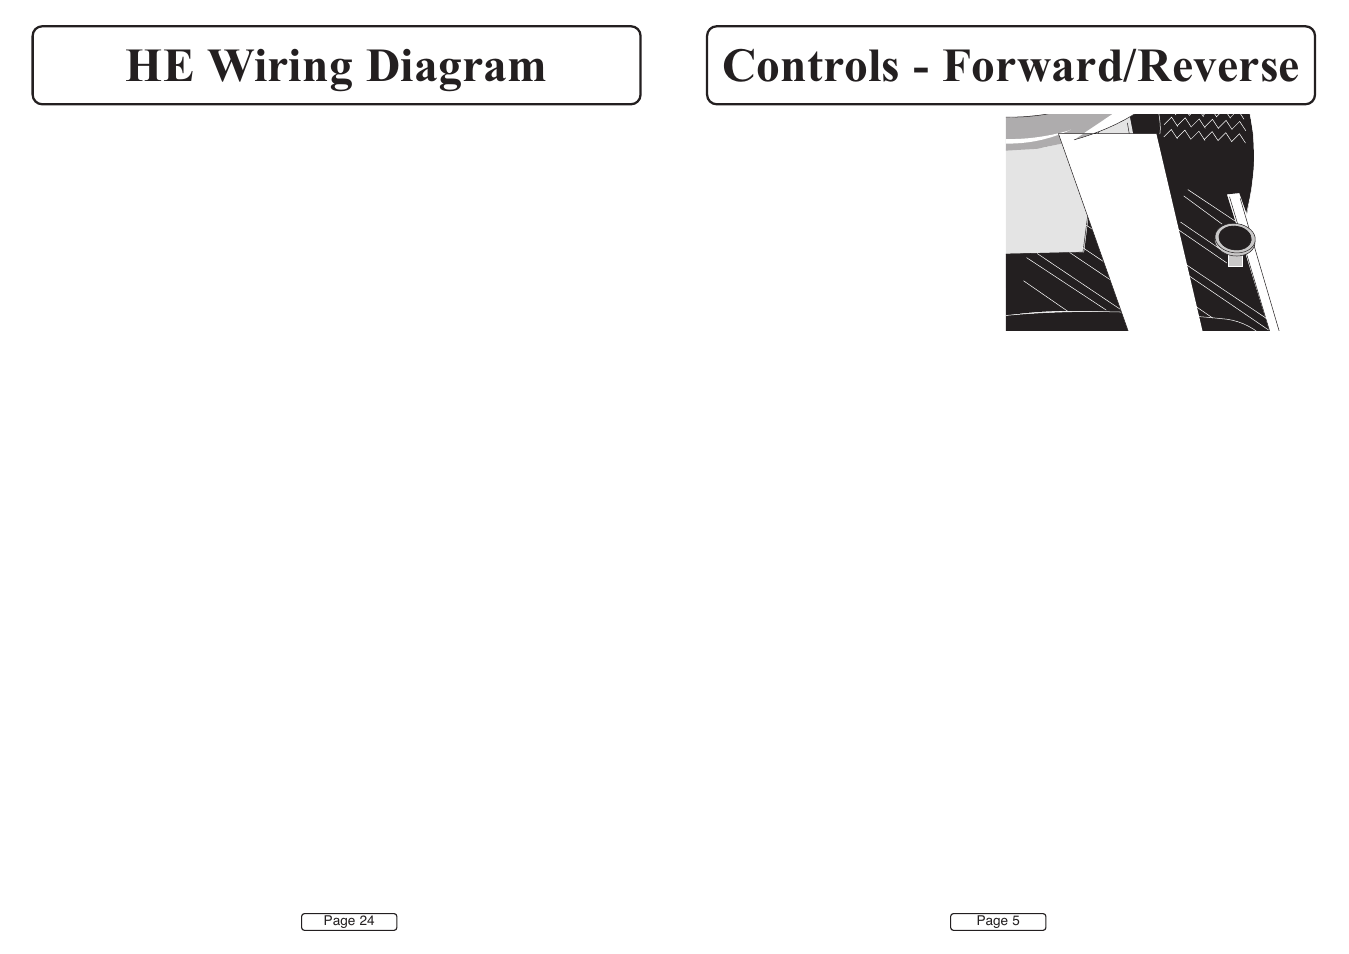 Controls - forward/reverse he wiring diagram | Countax A50 ... on